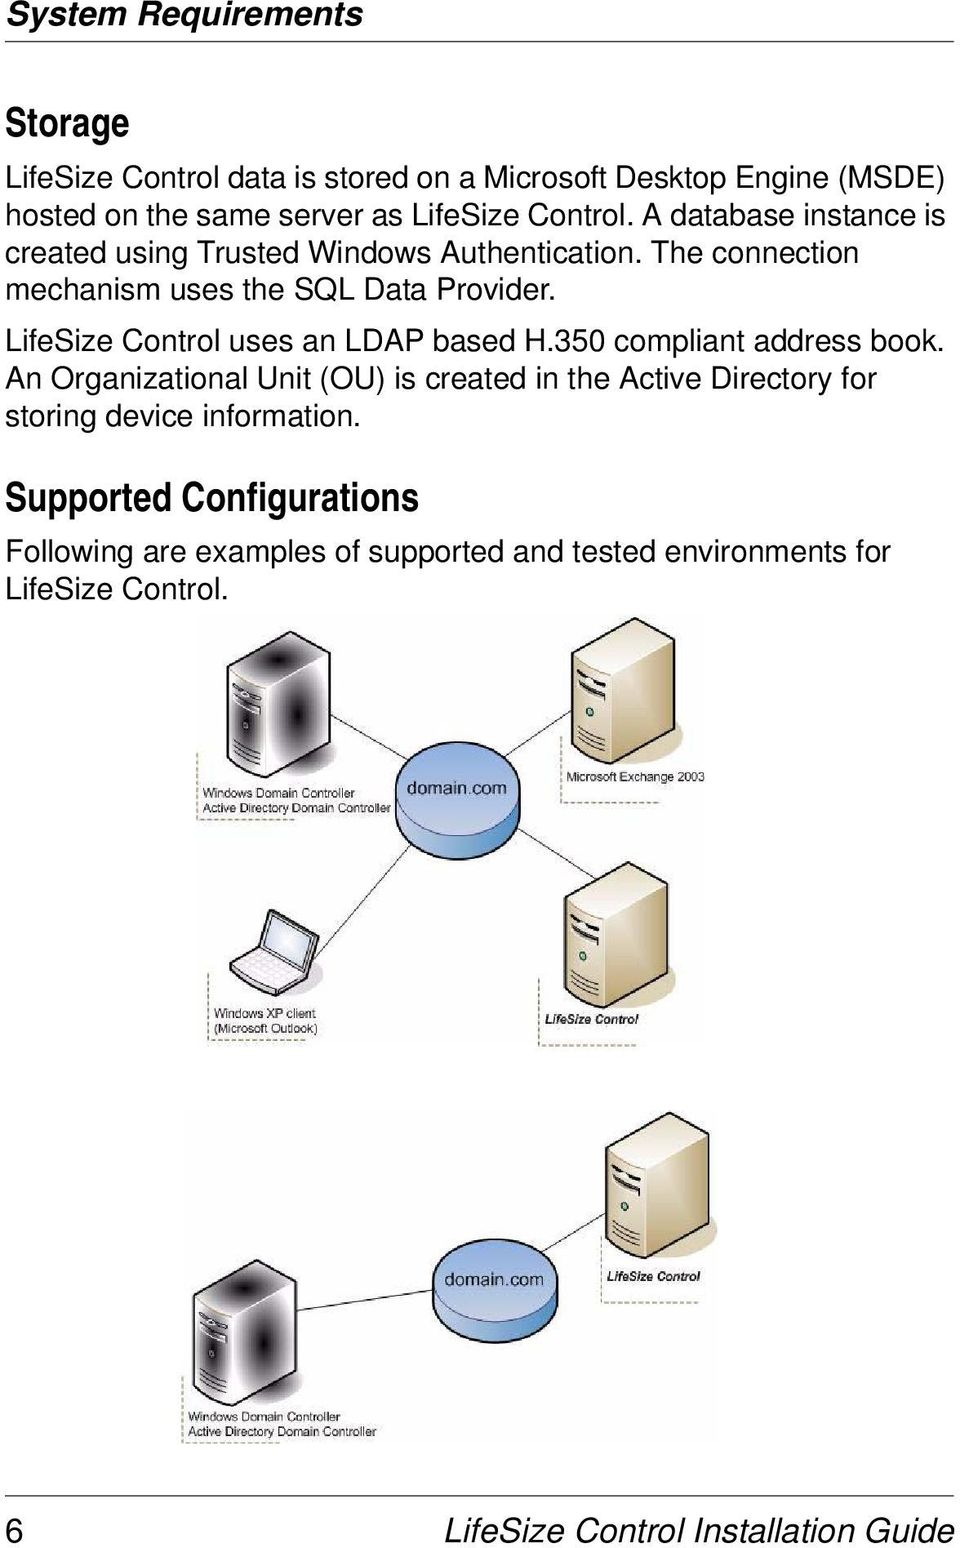 LifeSize Control uses an LDAP based H.350 compliant address book.